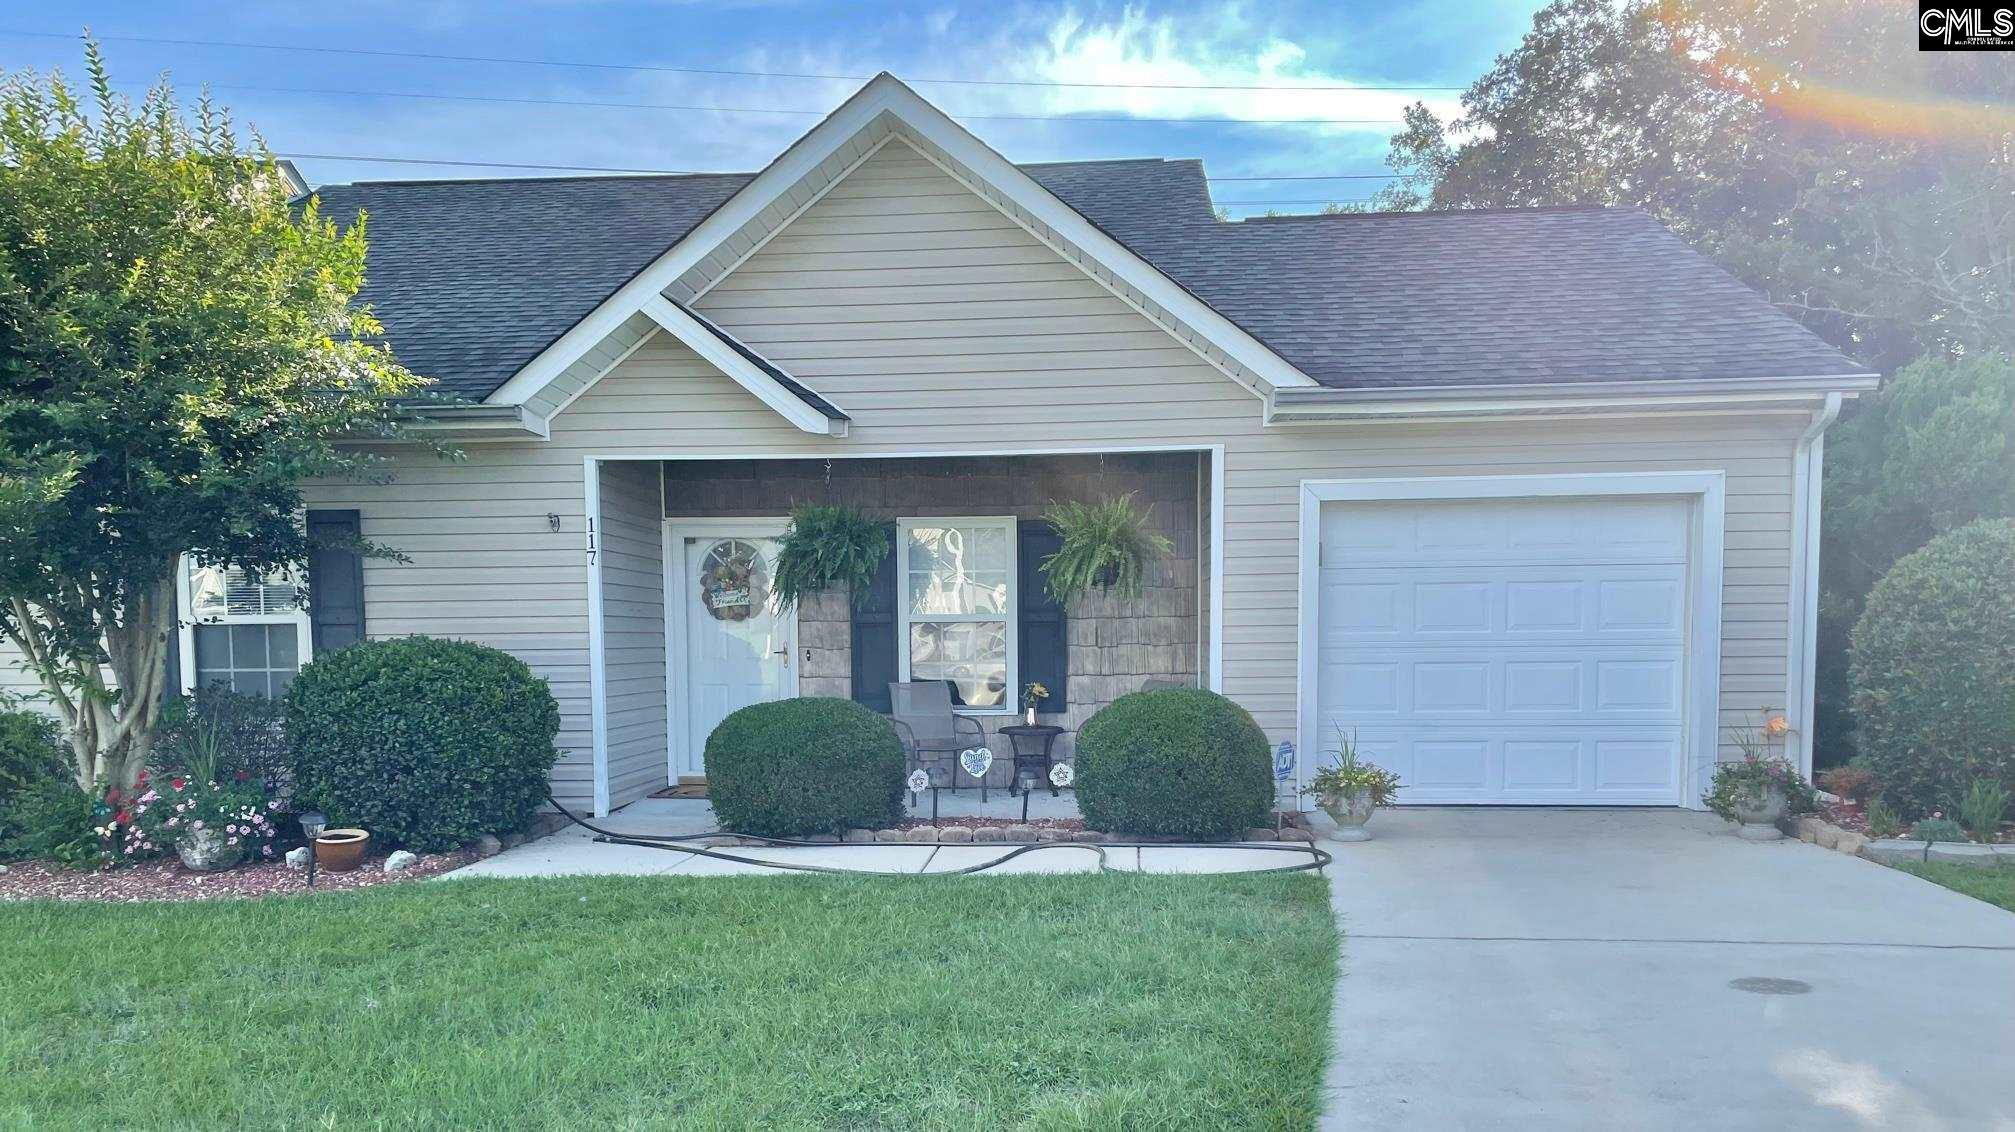 117 Weeping Willow Blythewood, SC 29016